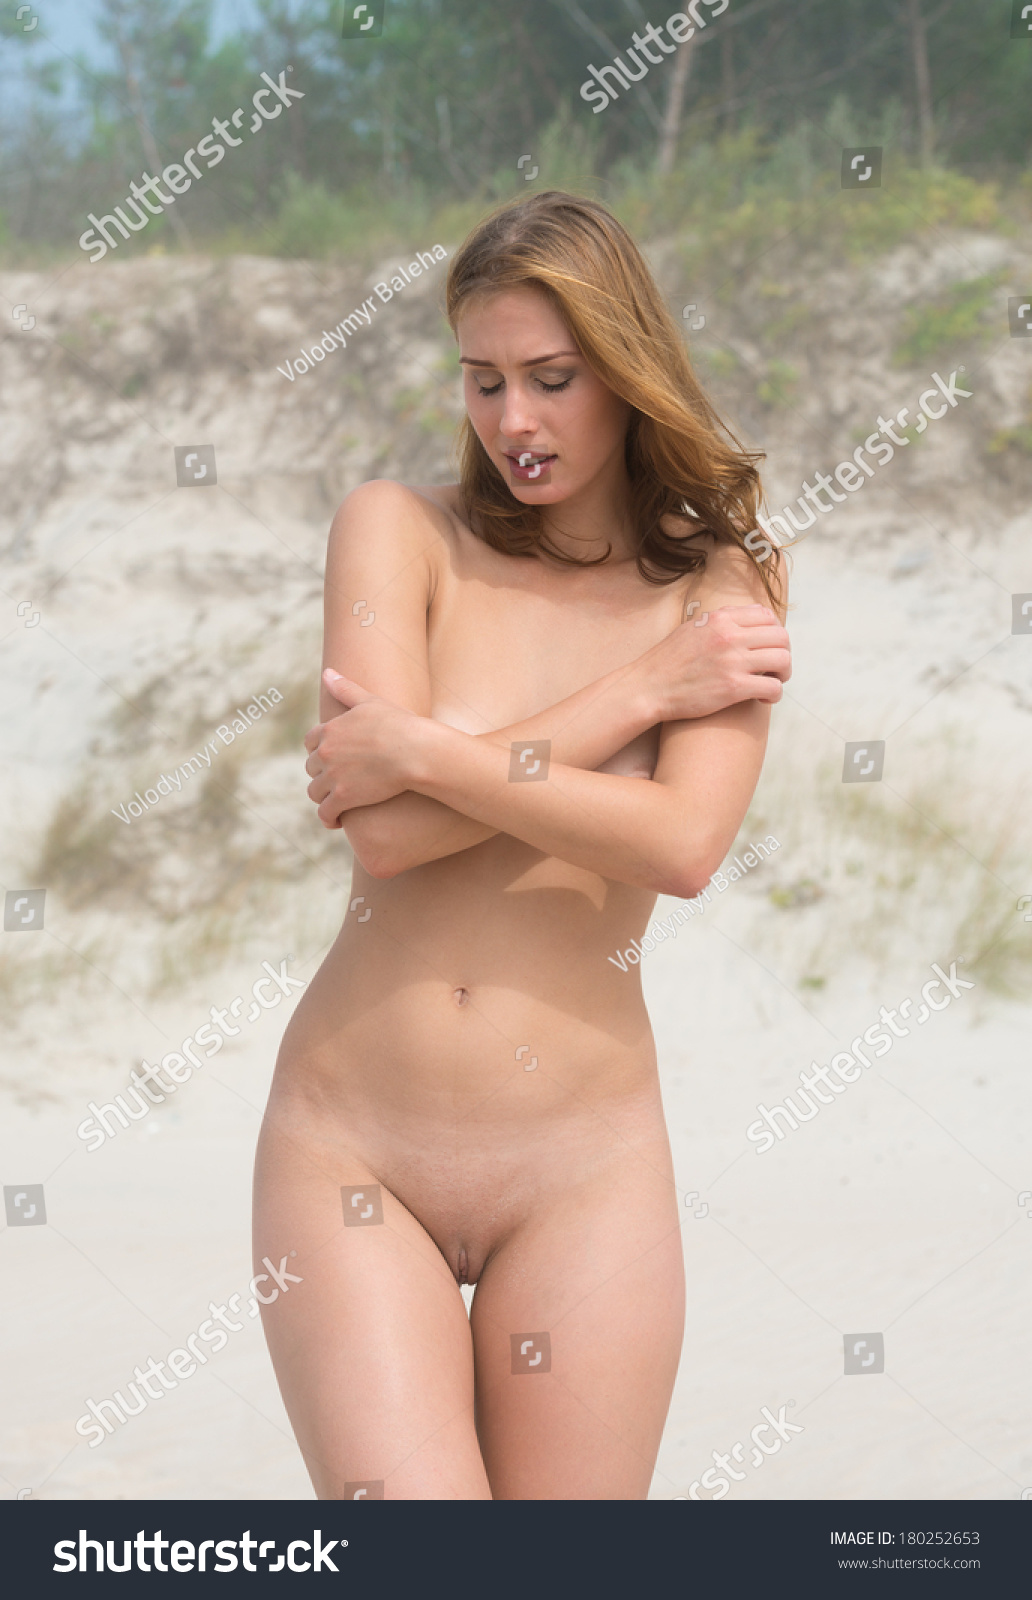 Young Naked Woman On A Sandy Beach On A Foggy Day